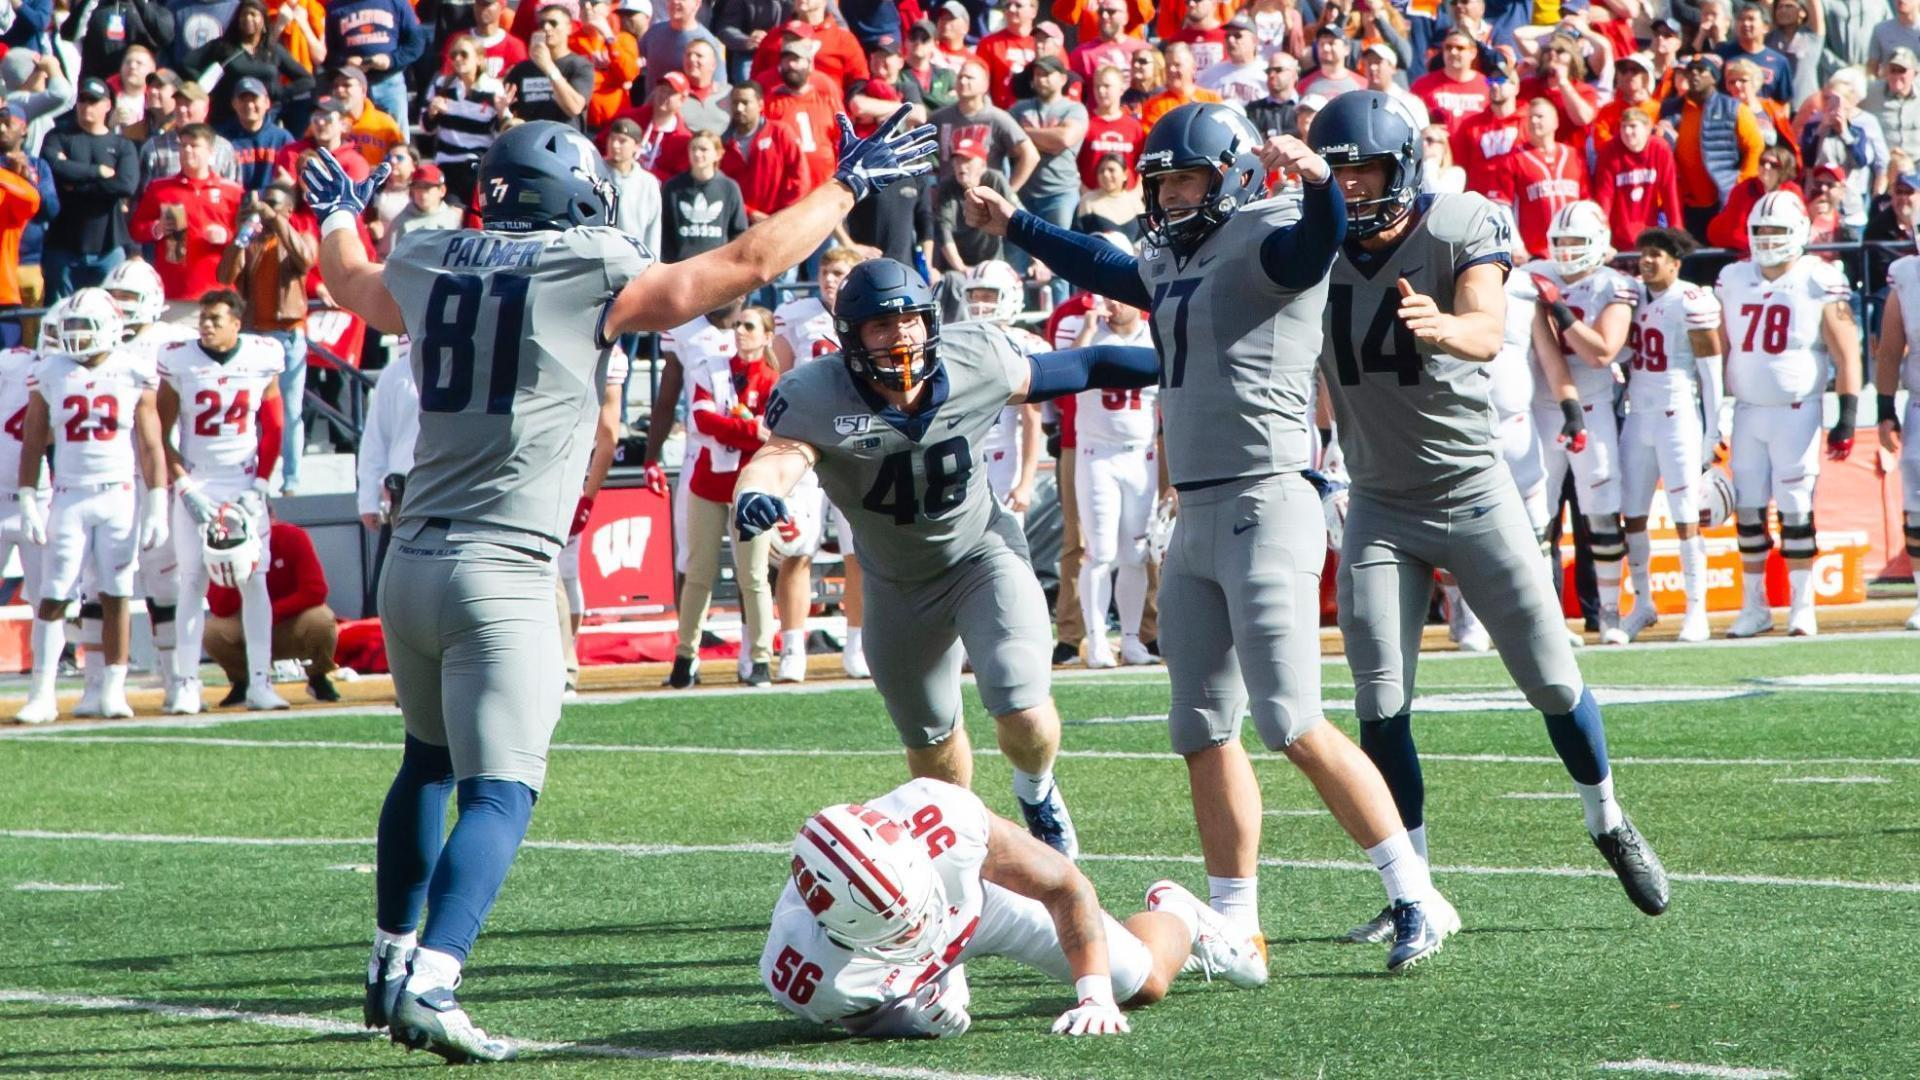 Illinois upsets Wisconsin with 39-yard FG